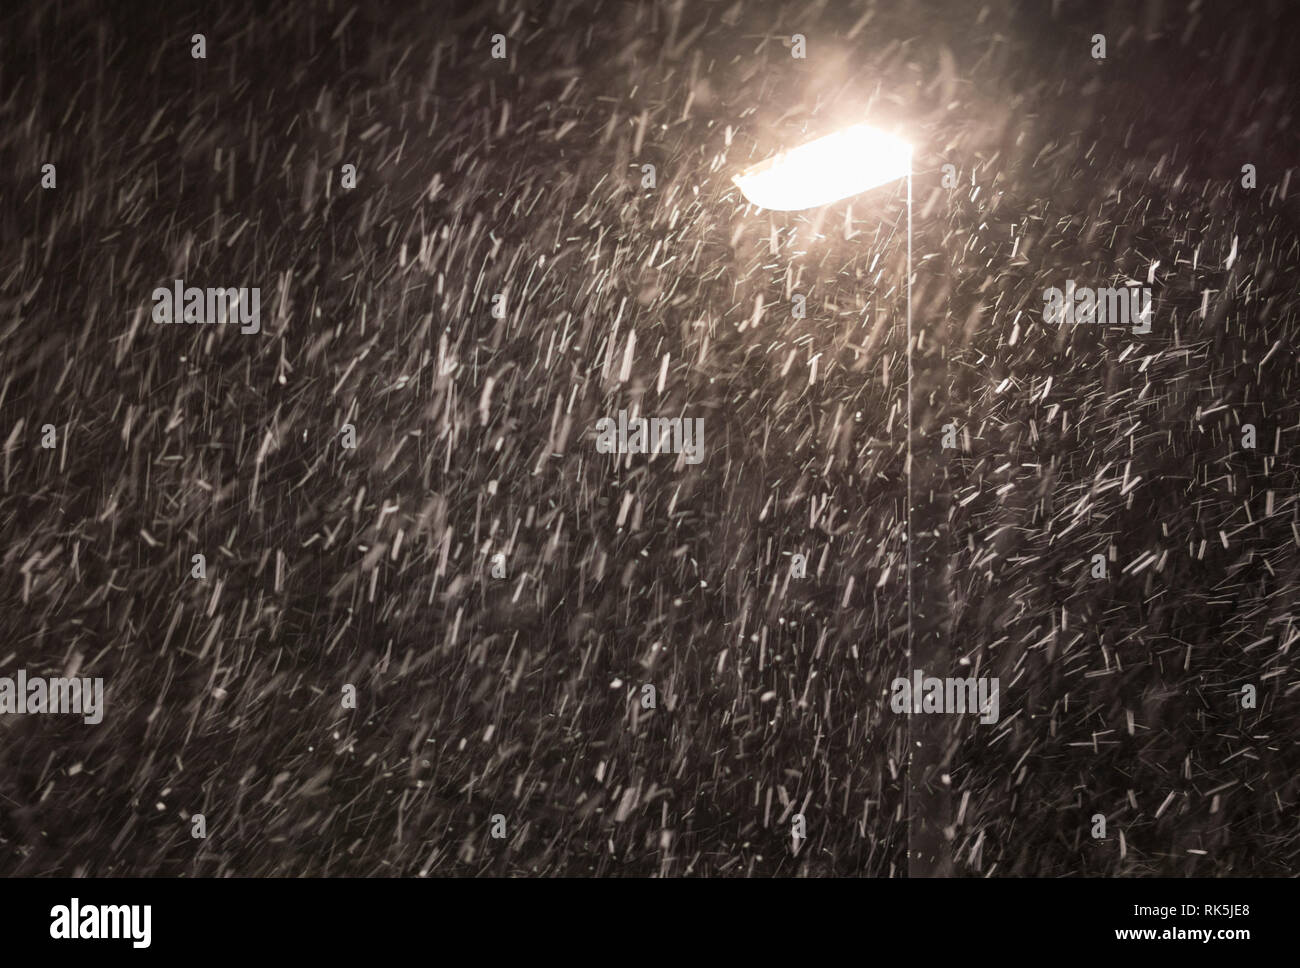 Snow falling at night by a lamppost. - Stock Image